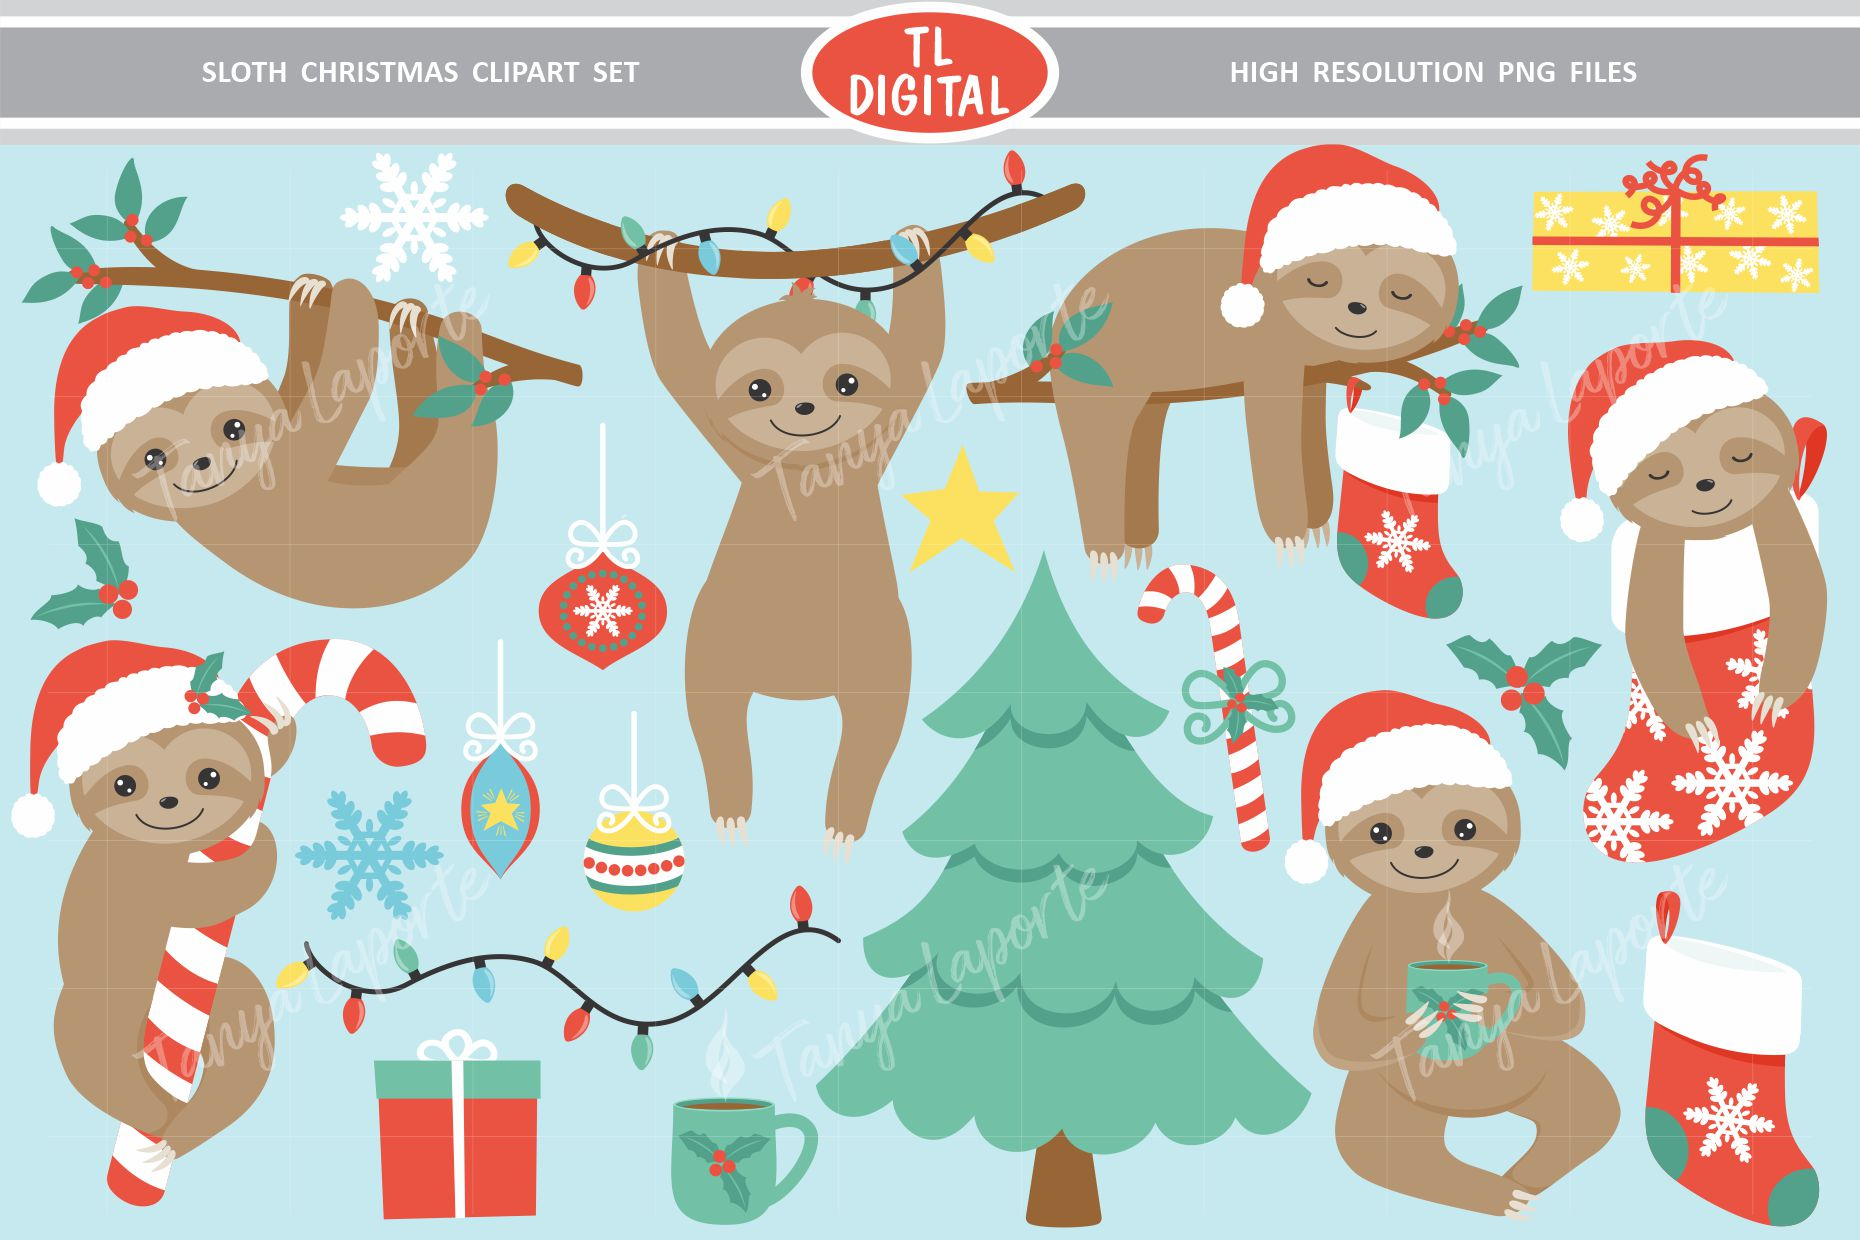 Sloth Christmas Clipart Set.